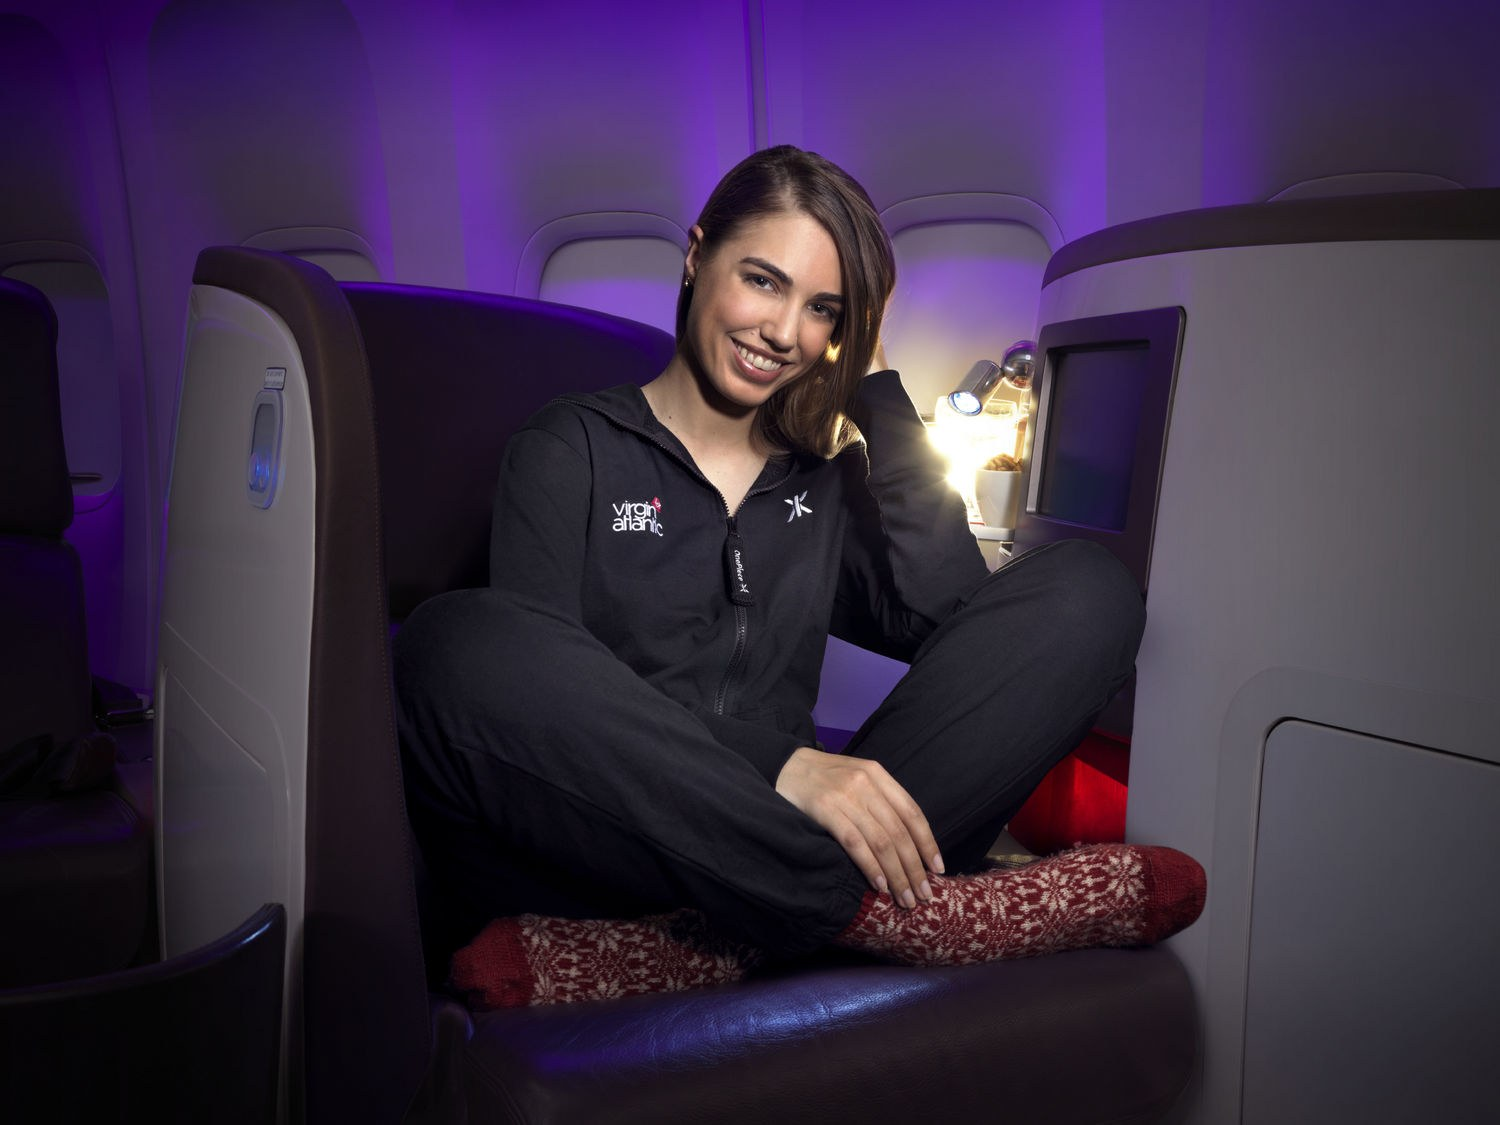 Virgin Atlantic Onesie